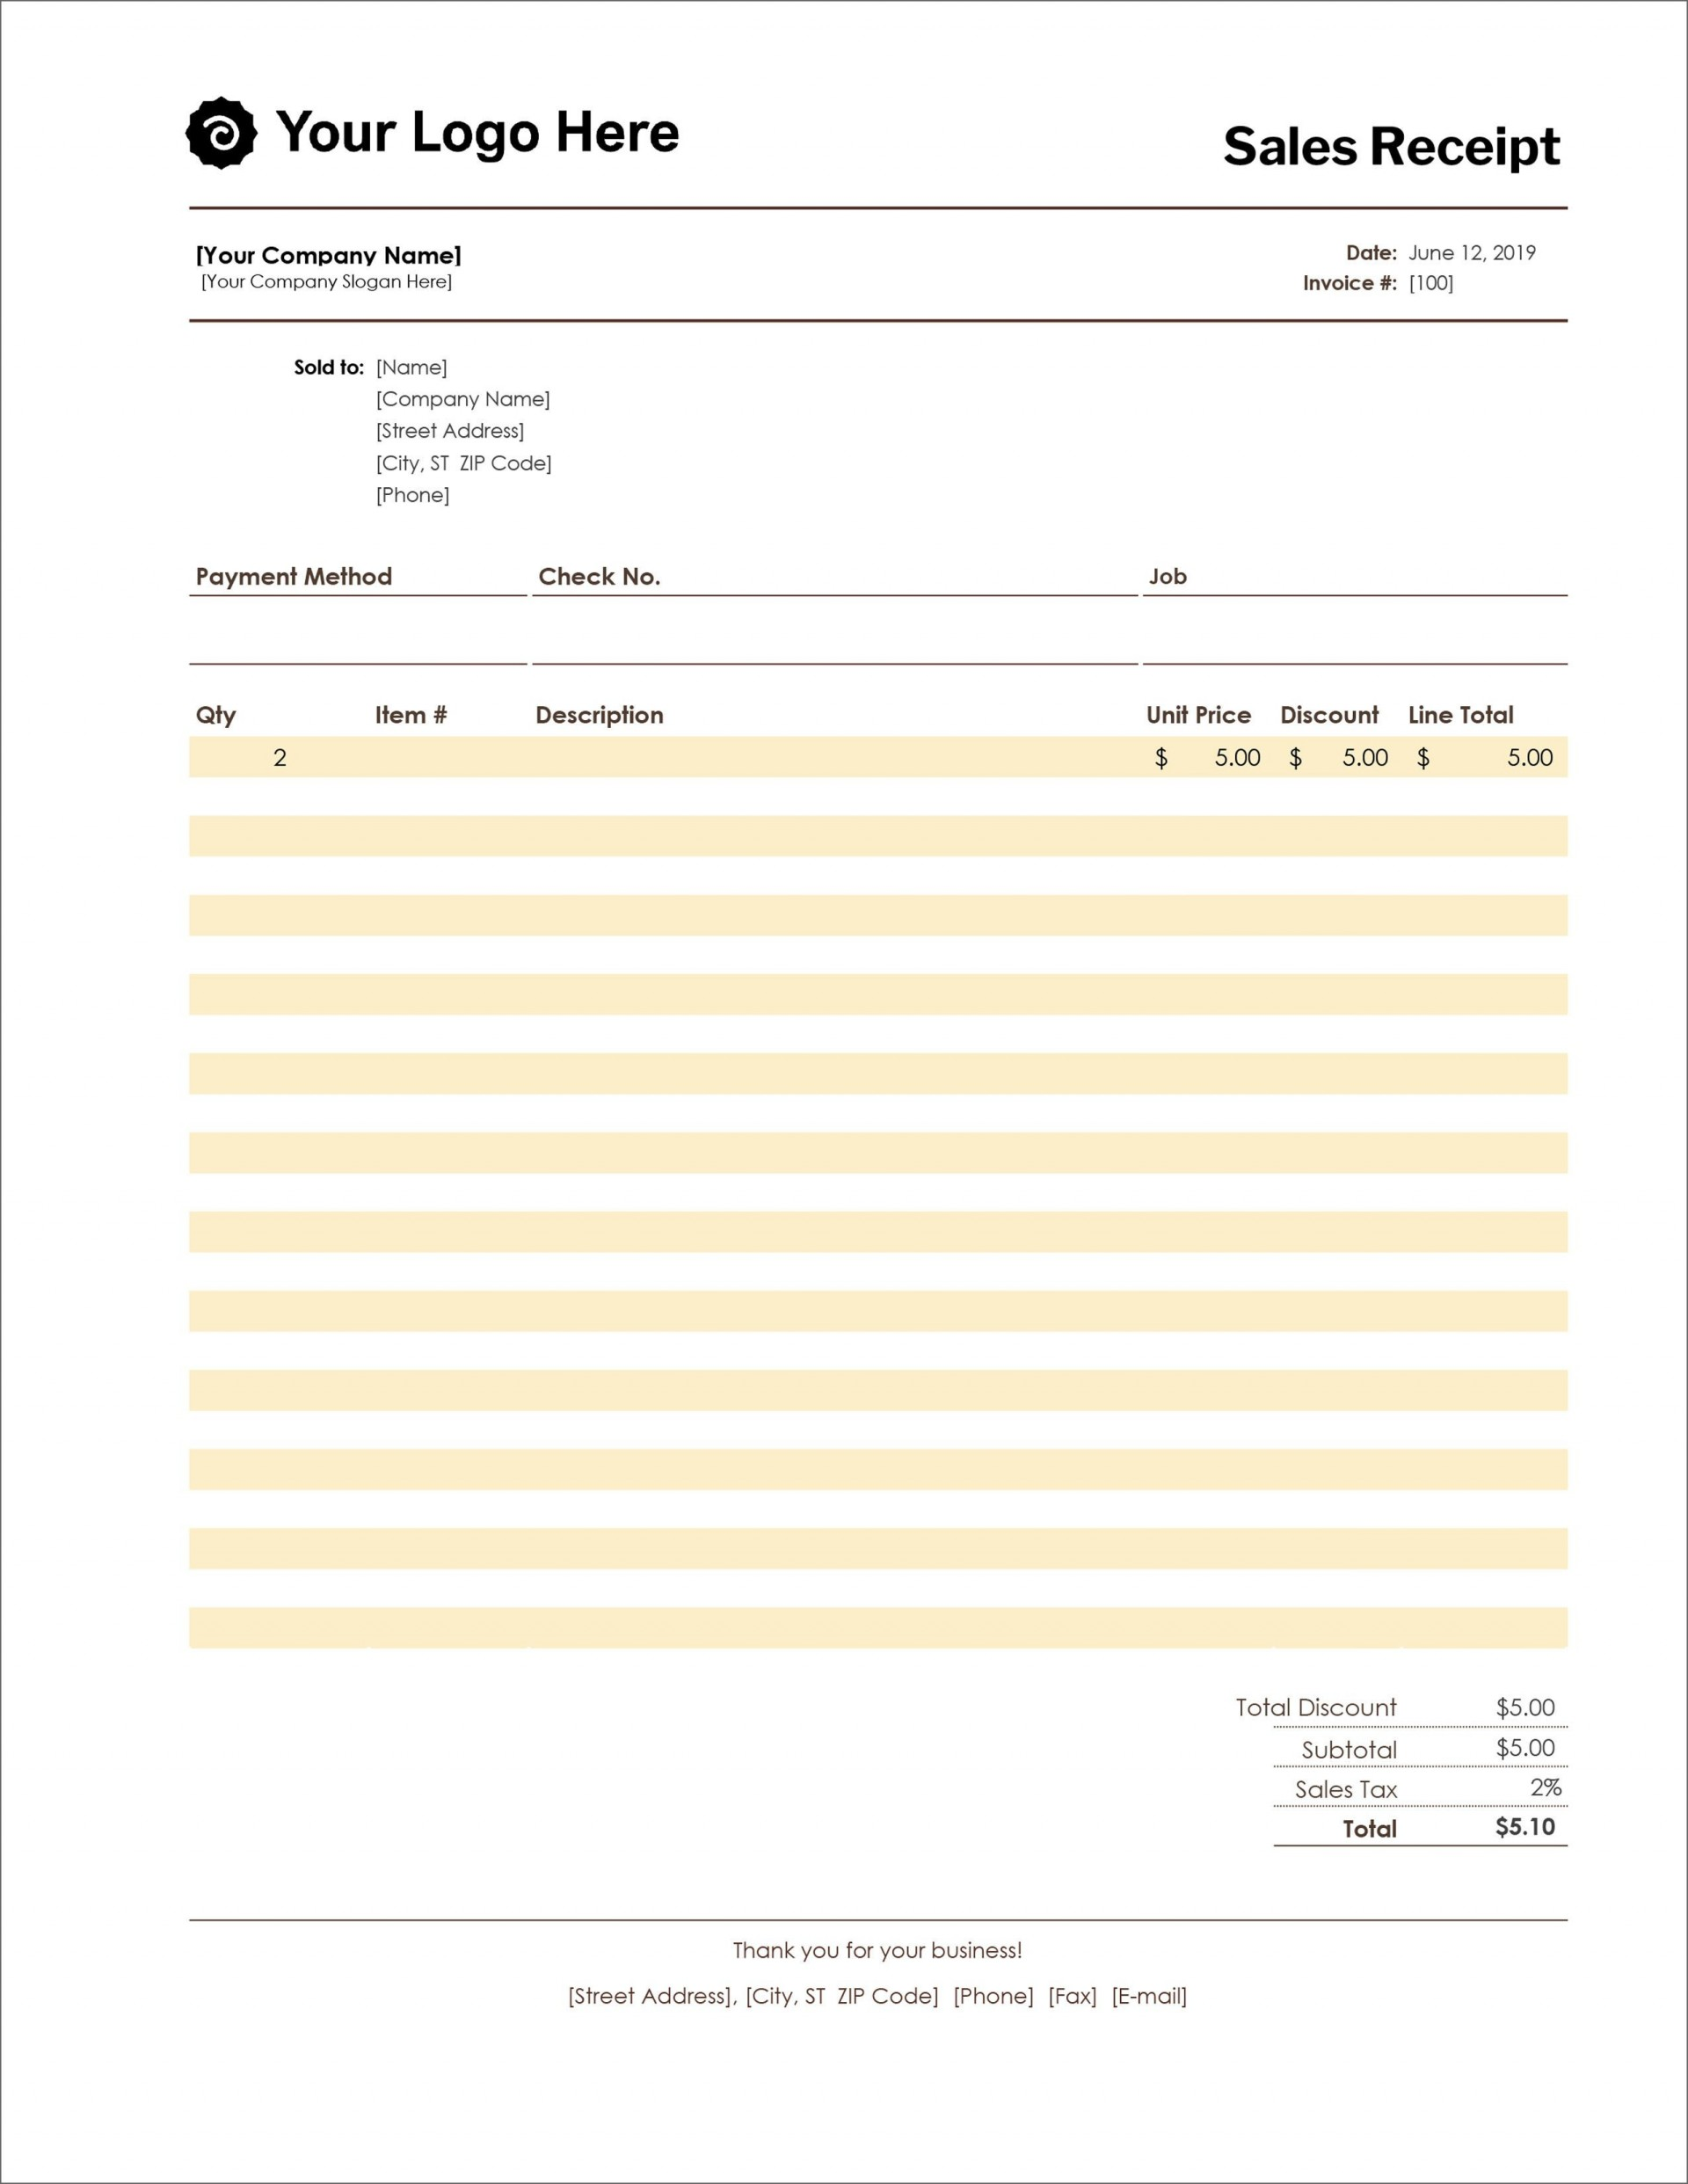 005 Archaicawful Receipt Template Microsoft Word Sample  Payment Invoice1920